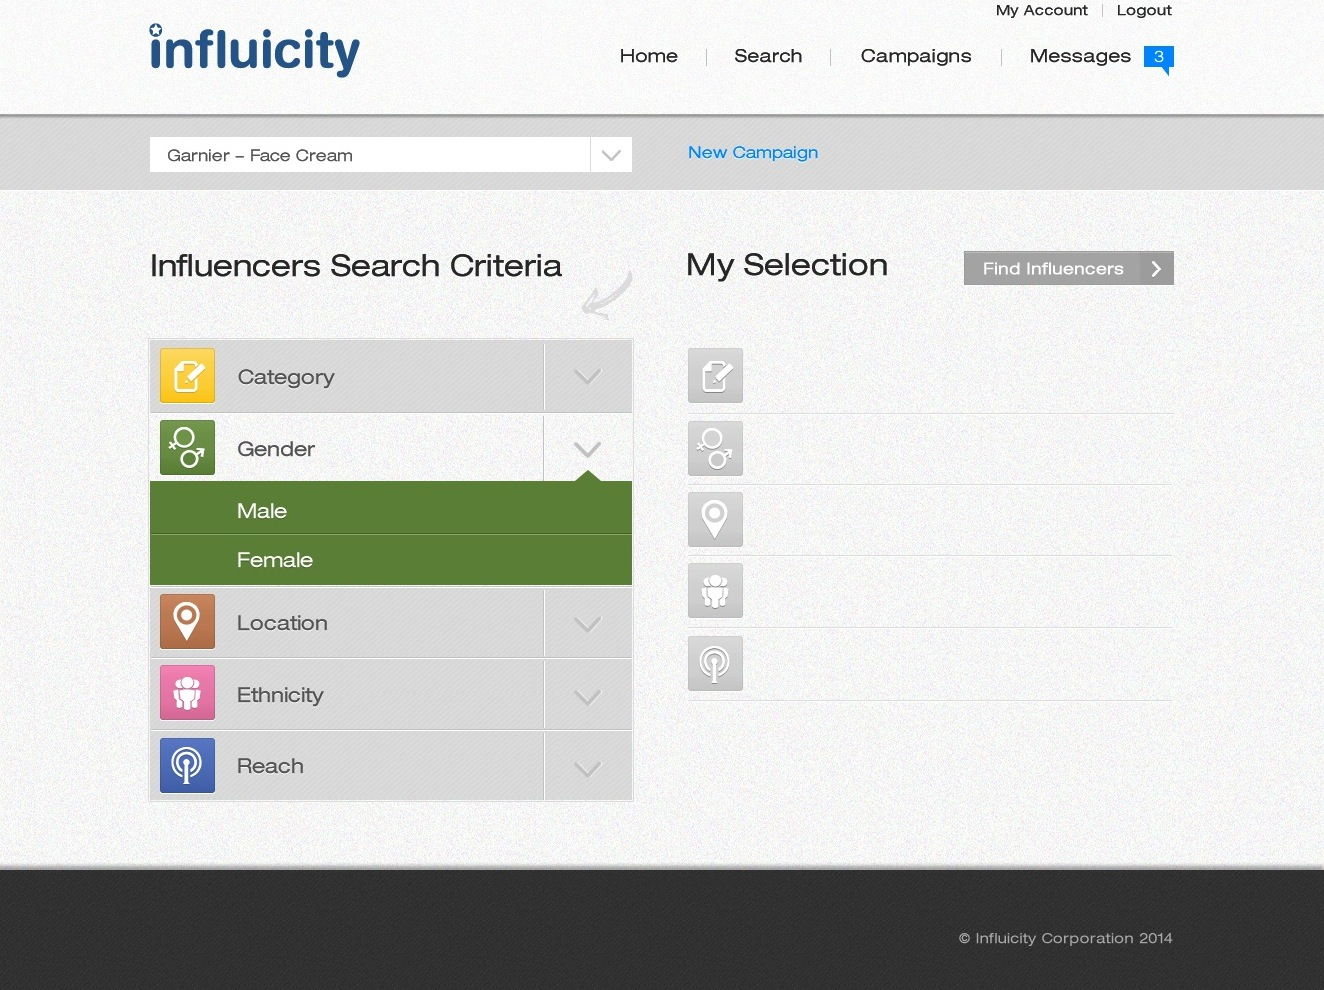 Influicity's search page, where clients can select their influencer search filters from the menus on the left. Selections appear on the right.